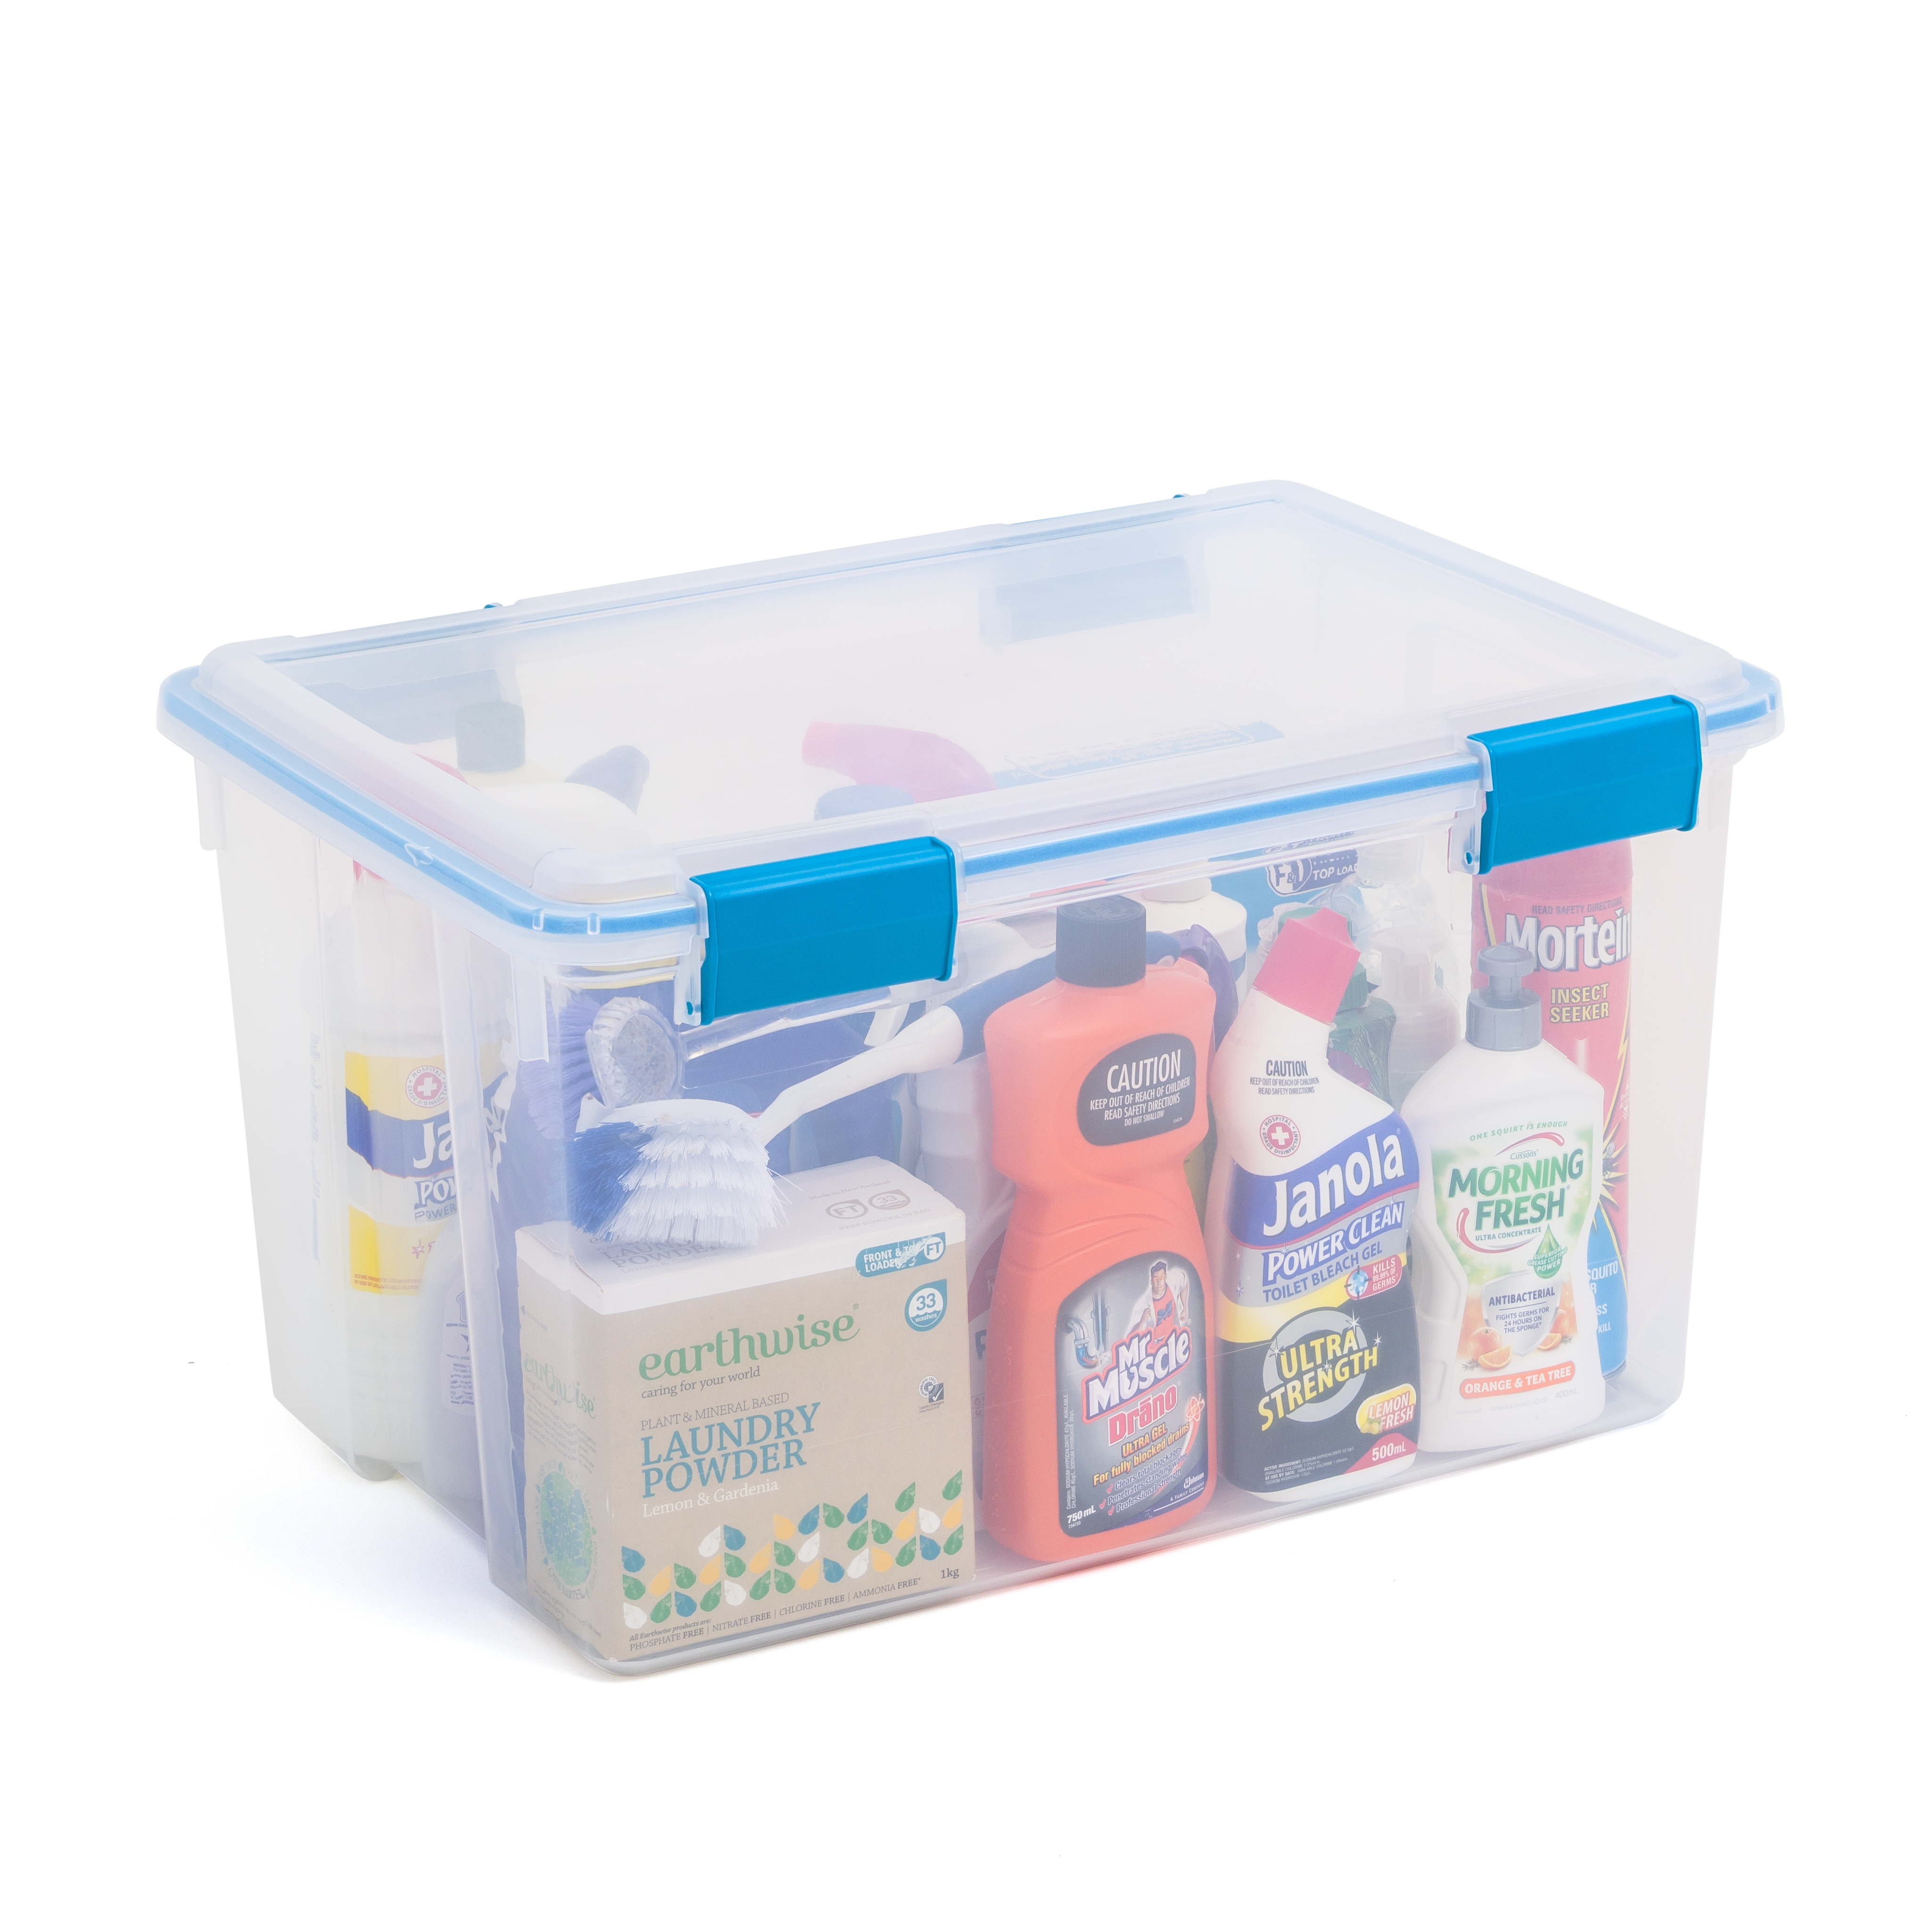 Sterilite Box 51L with Seal Lid from Storage Box